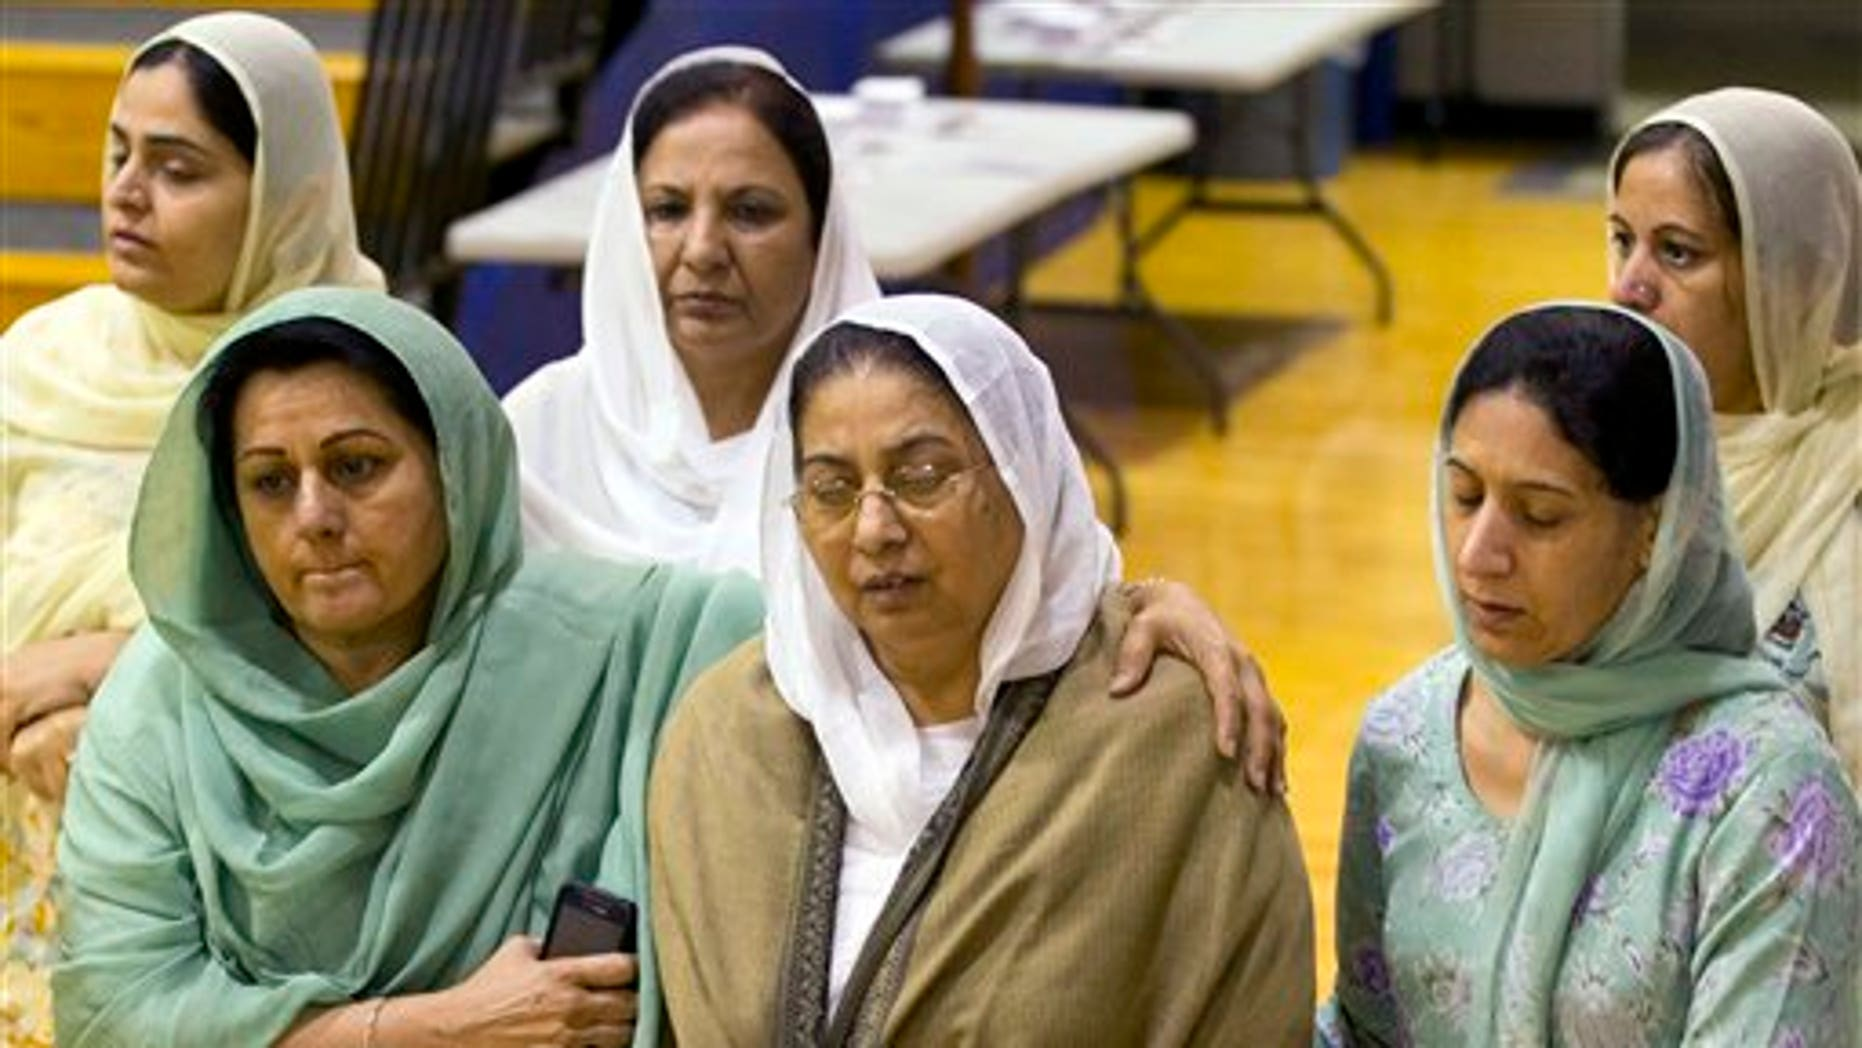 Aug. 10: Mourners grieve at the funeral and memorial service for the six victims of the Sikh Temple of Wisconsin mass shooting in Oak Creek, Wis. The public service was held in the Oak Creek High School. Three other people were wounded in the shooting last Sunday at the temple.